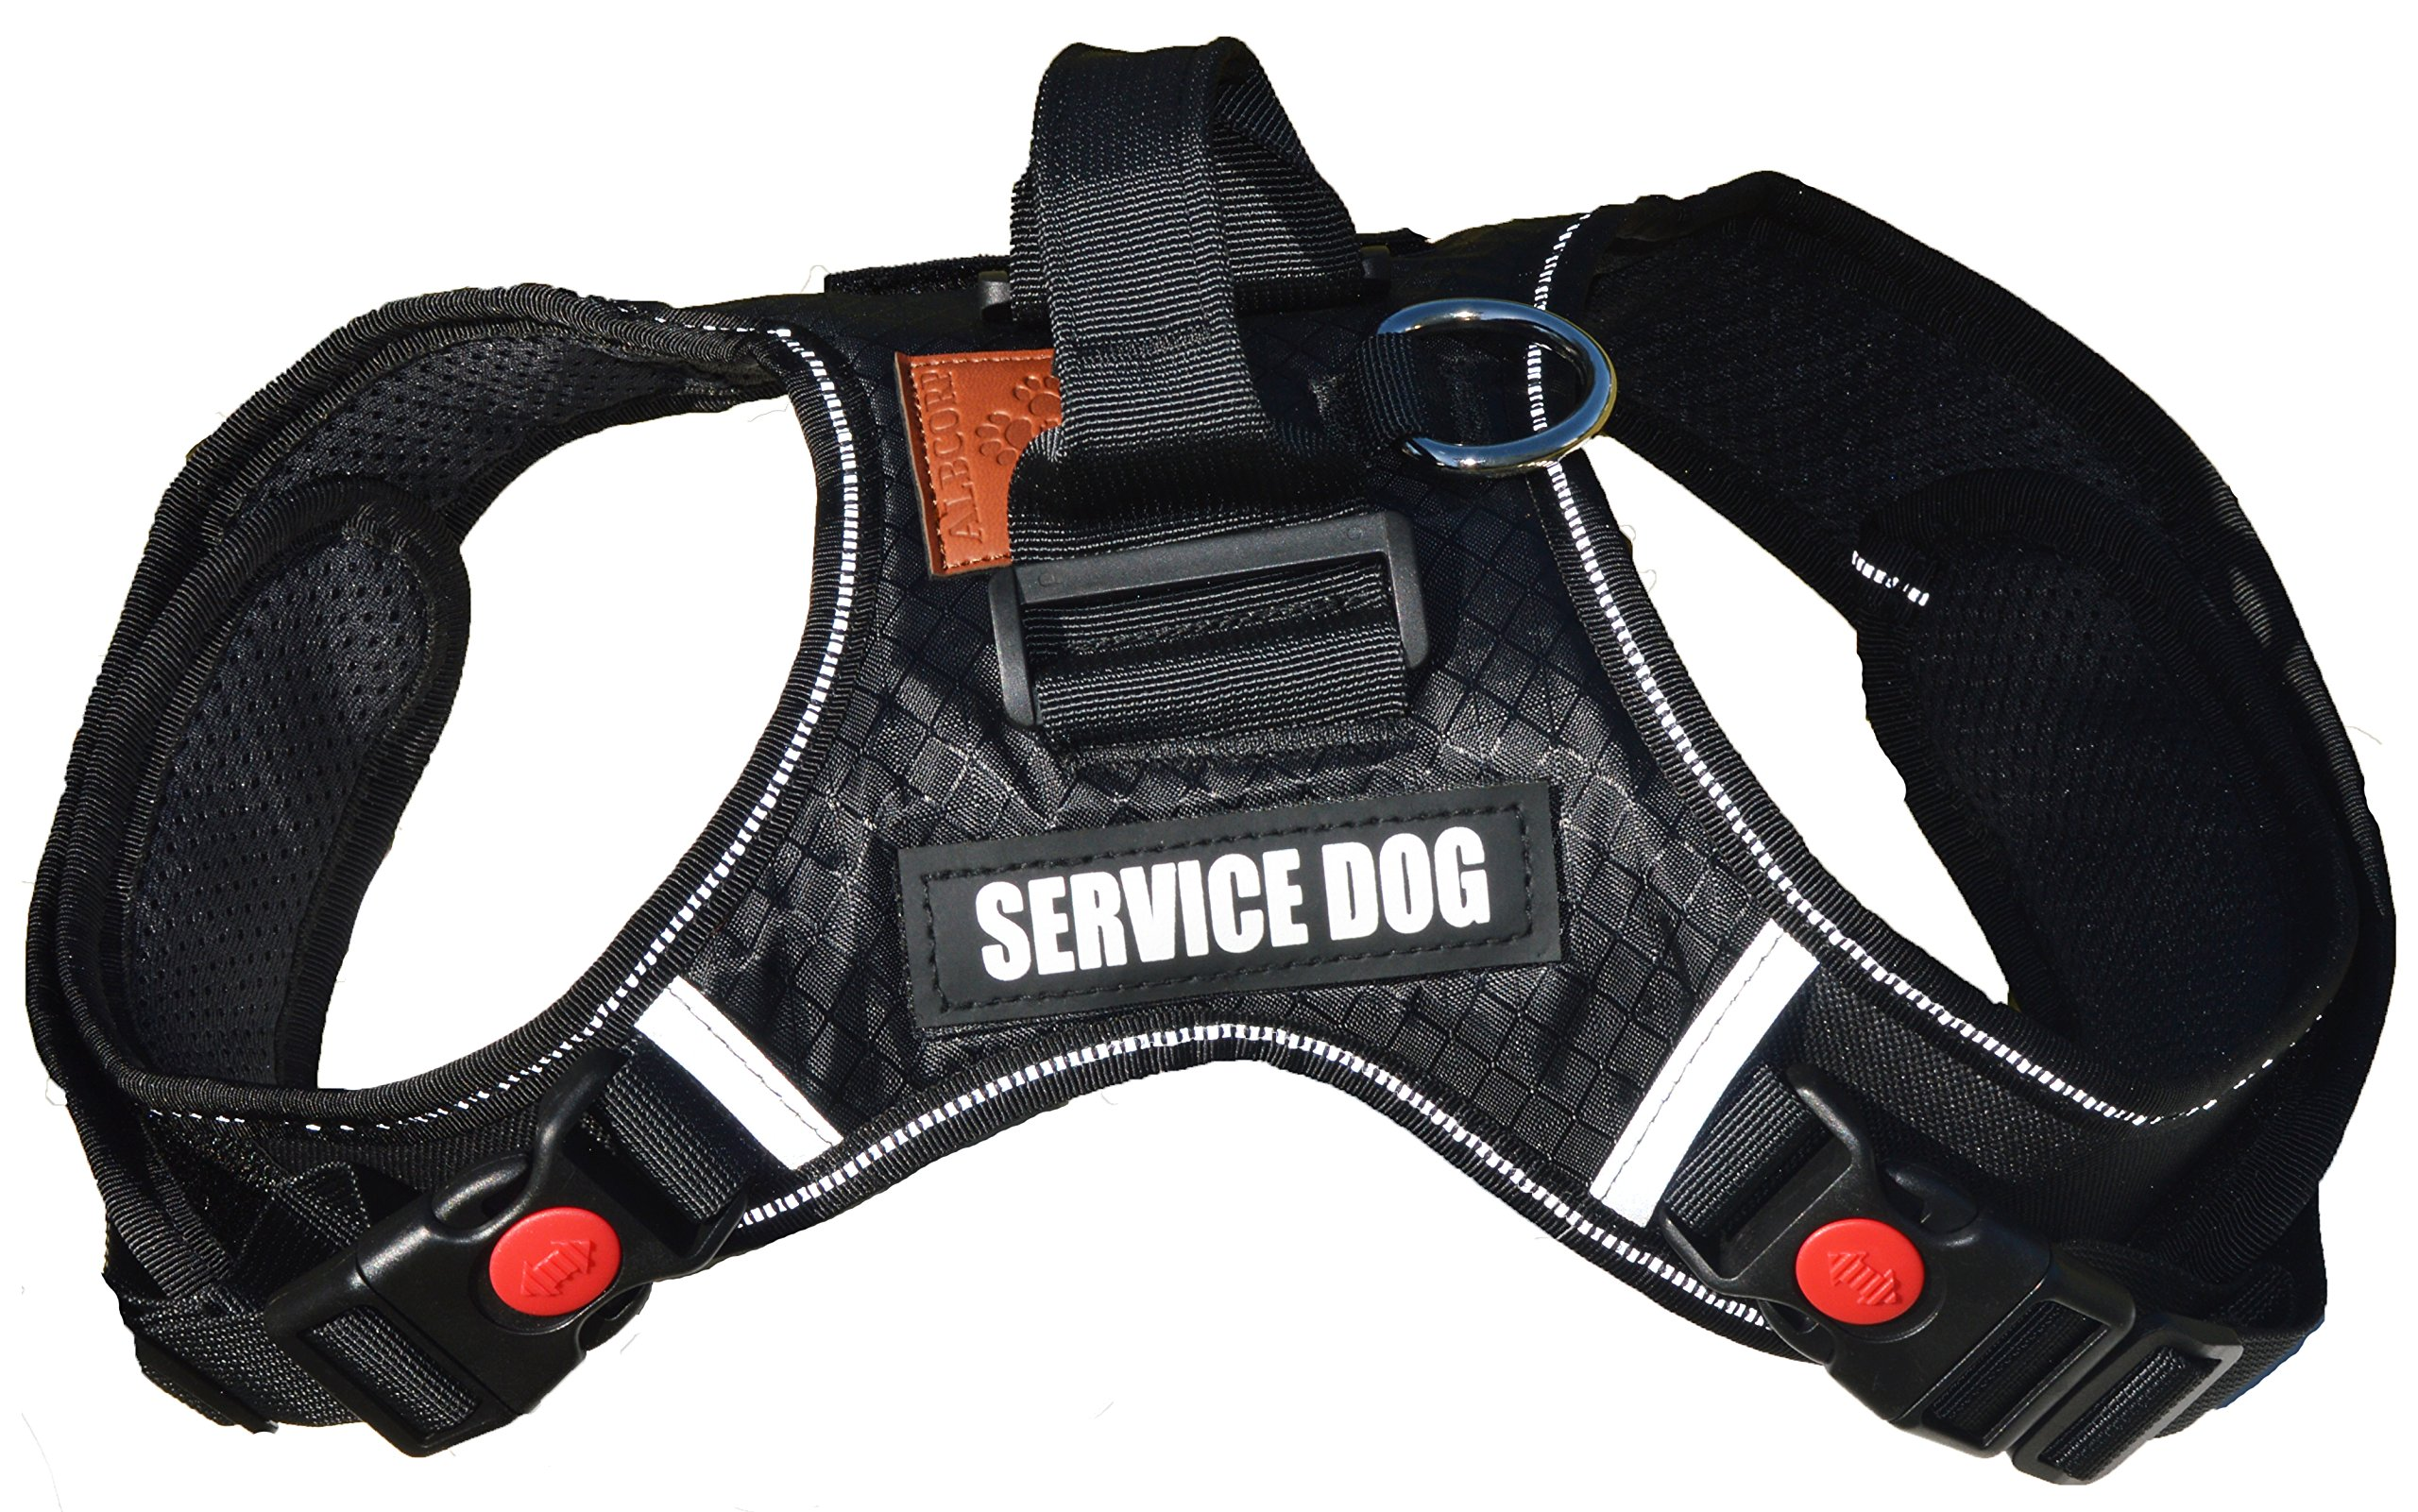 ALBCORP Reflective Service Dog Vest Harness, Woven Nylon, Neoprene Handle, Adjustable Straps, with Comfy Mesh Padding, and 2 Hook and Loop Removable Patches, Small, Black